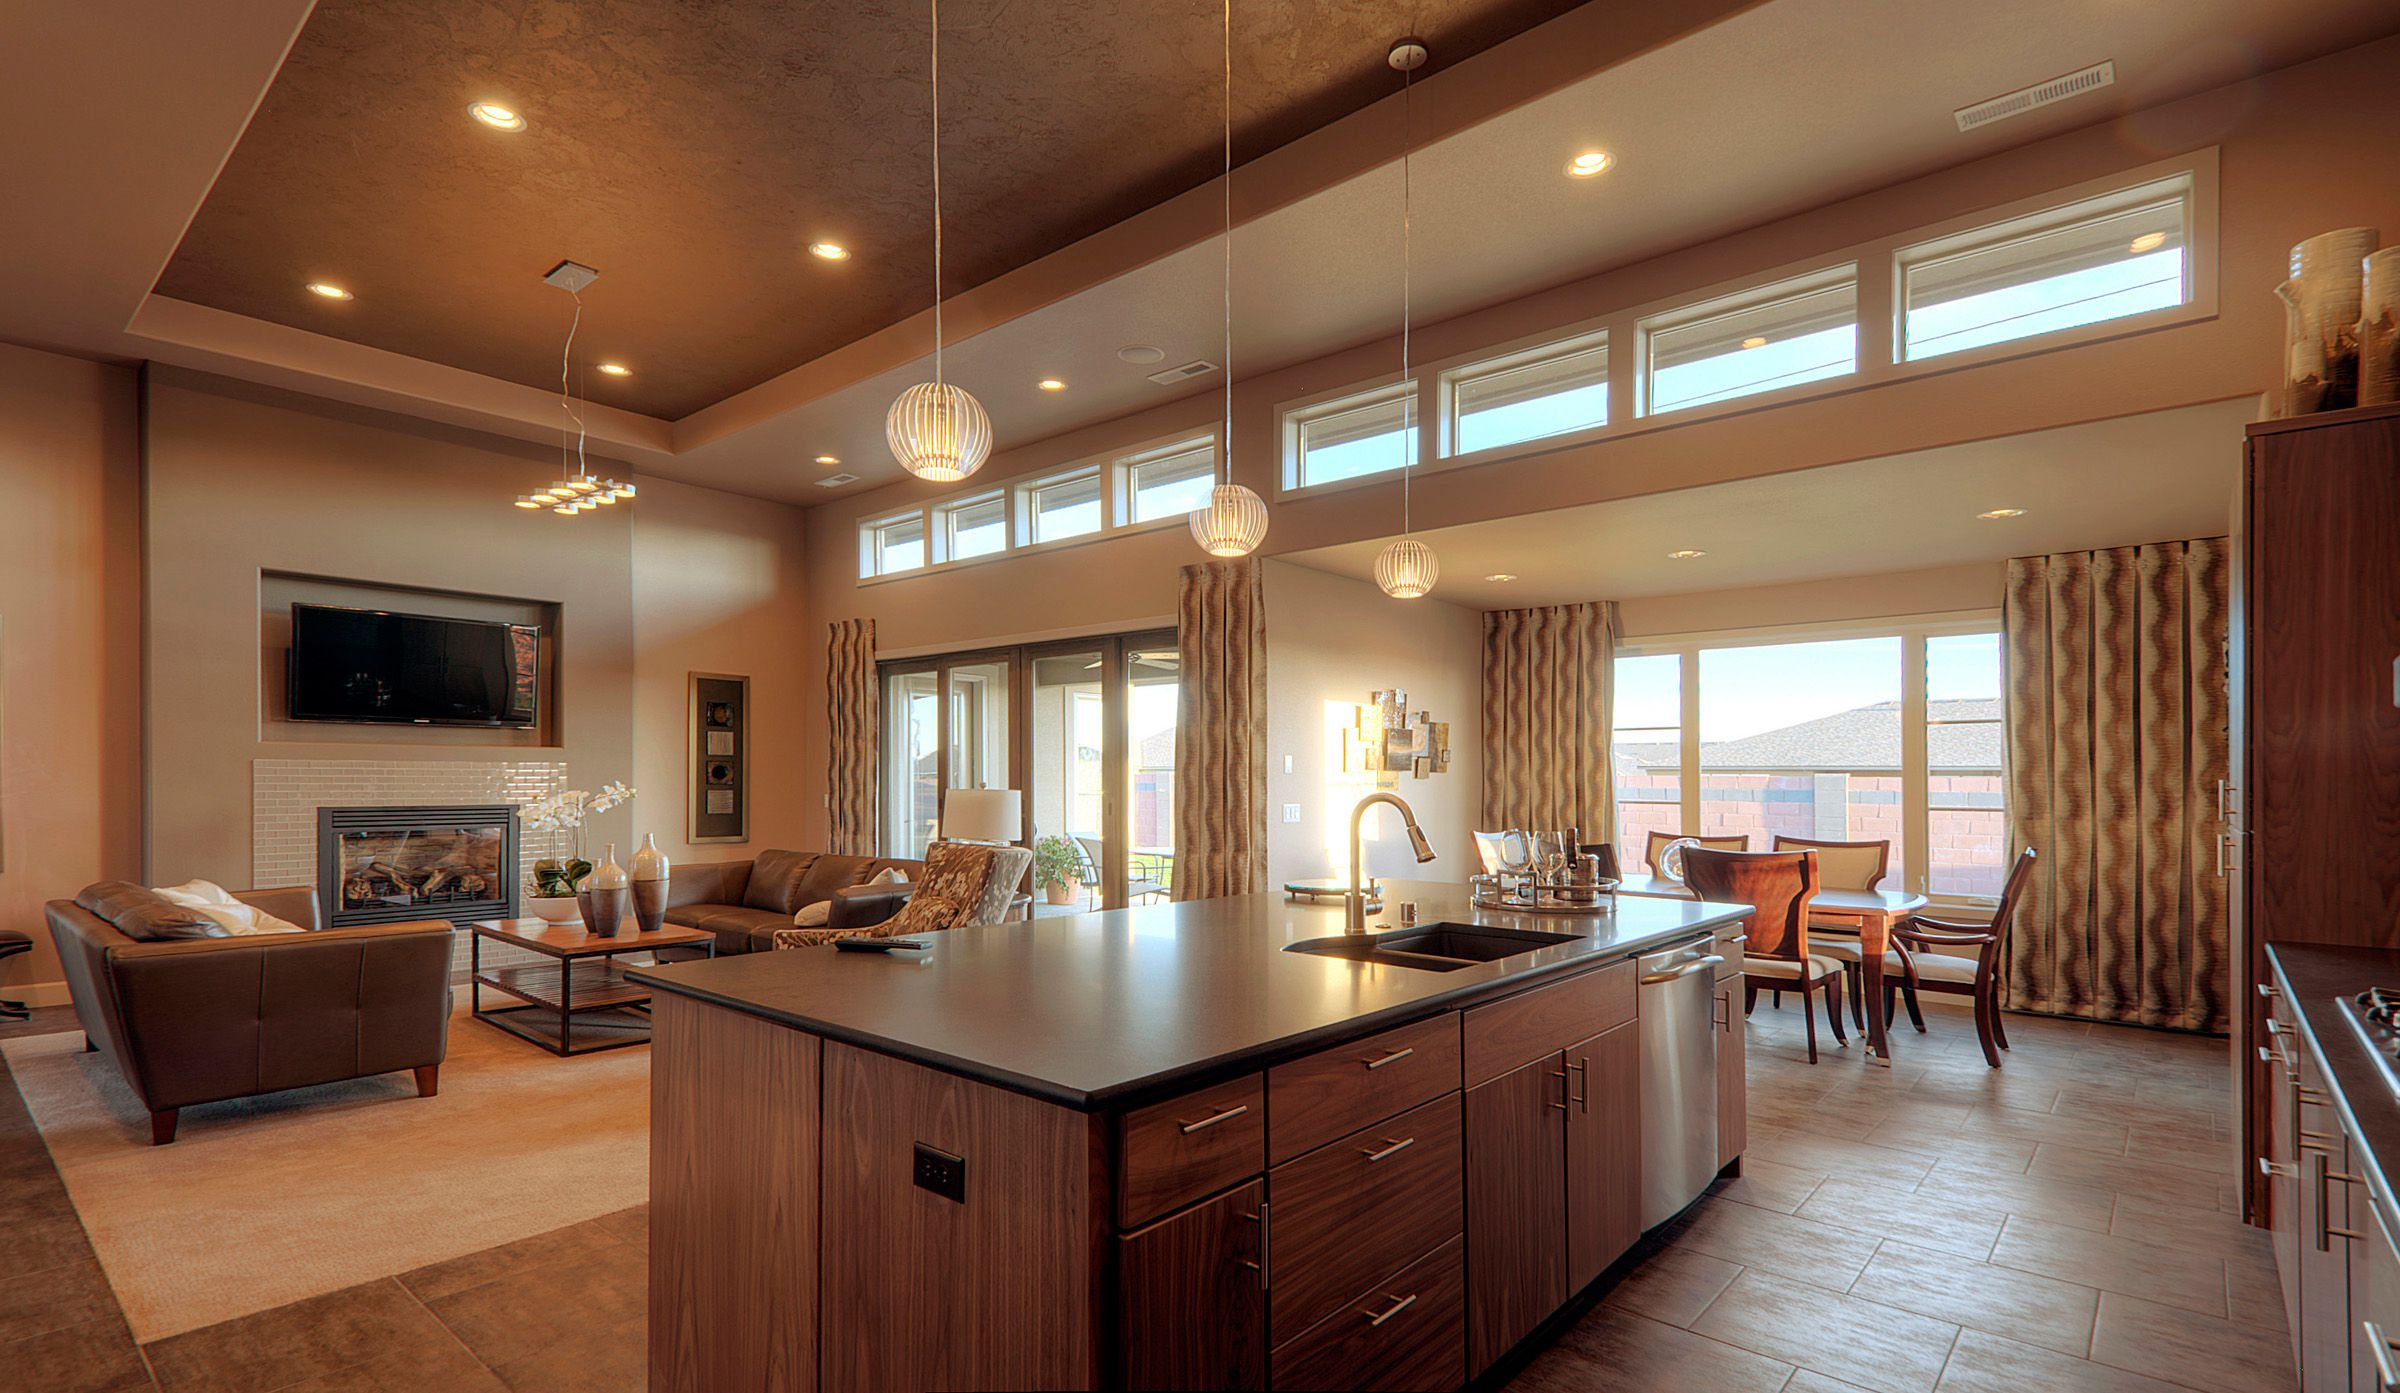 Add Enchanting Ceiling Lamps for Wonderful Open Floor Plans with Oak Kitchen Island and Fluffy Brown Sofas